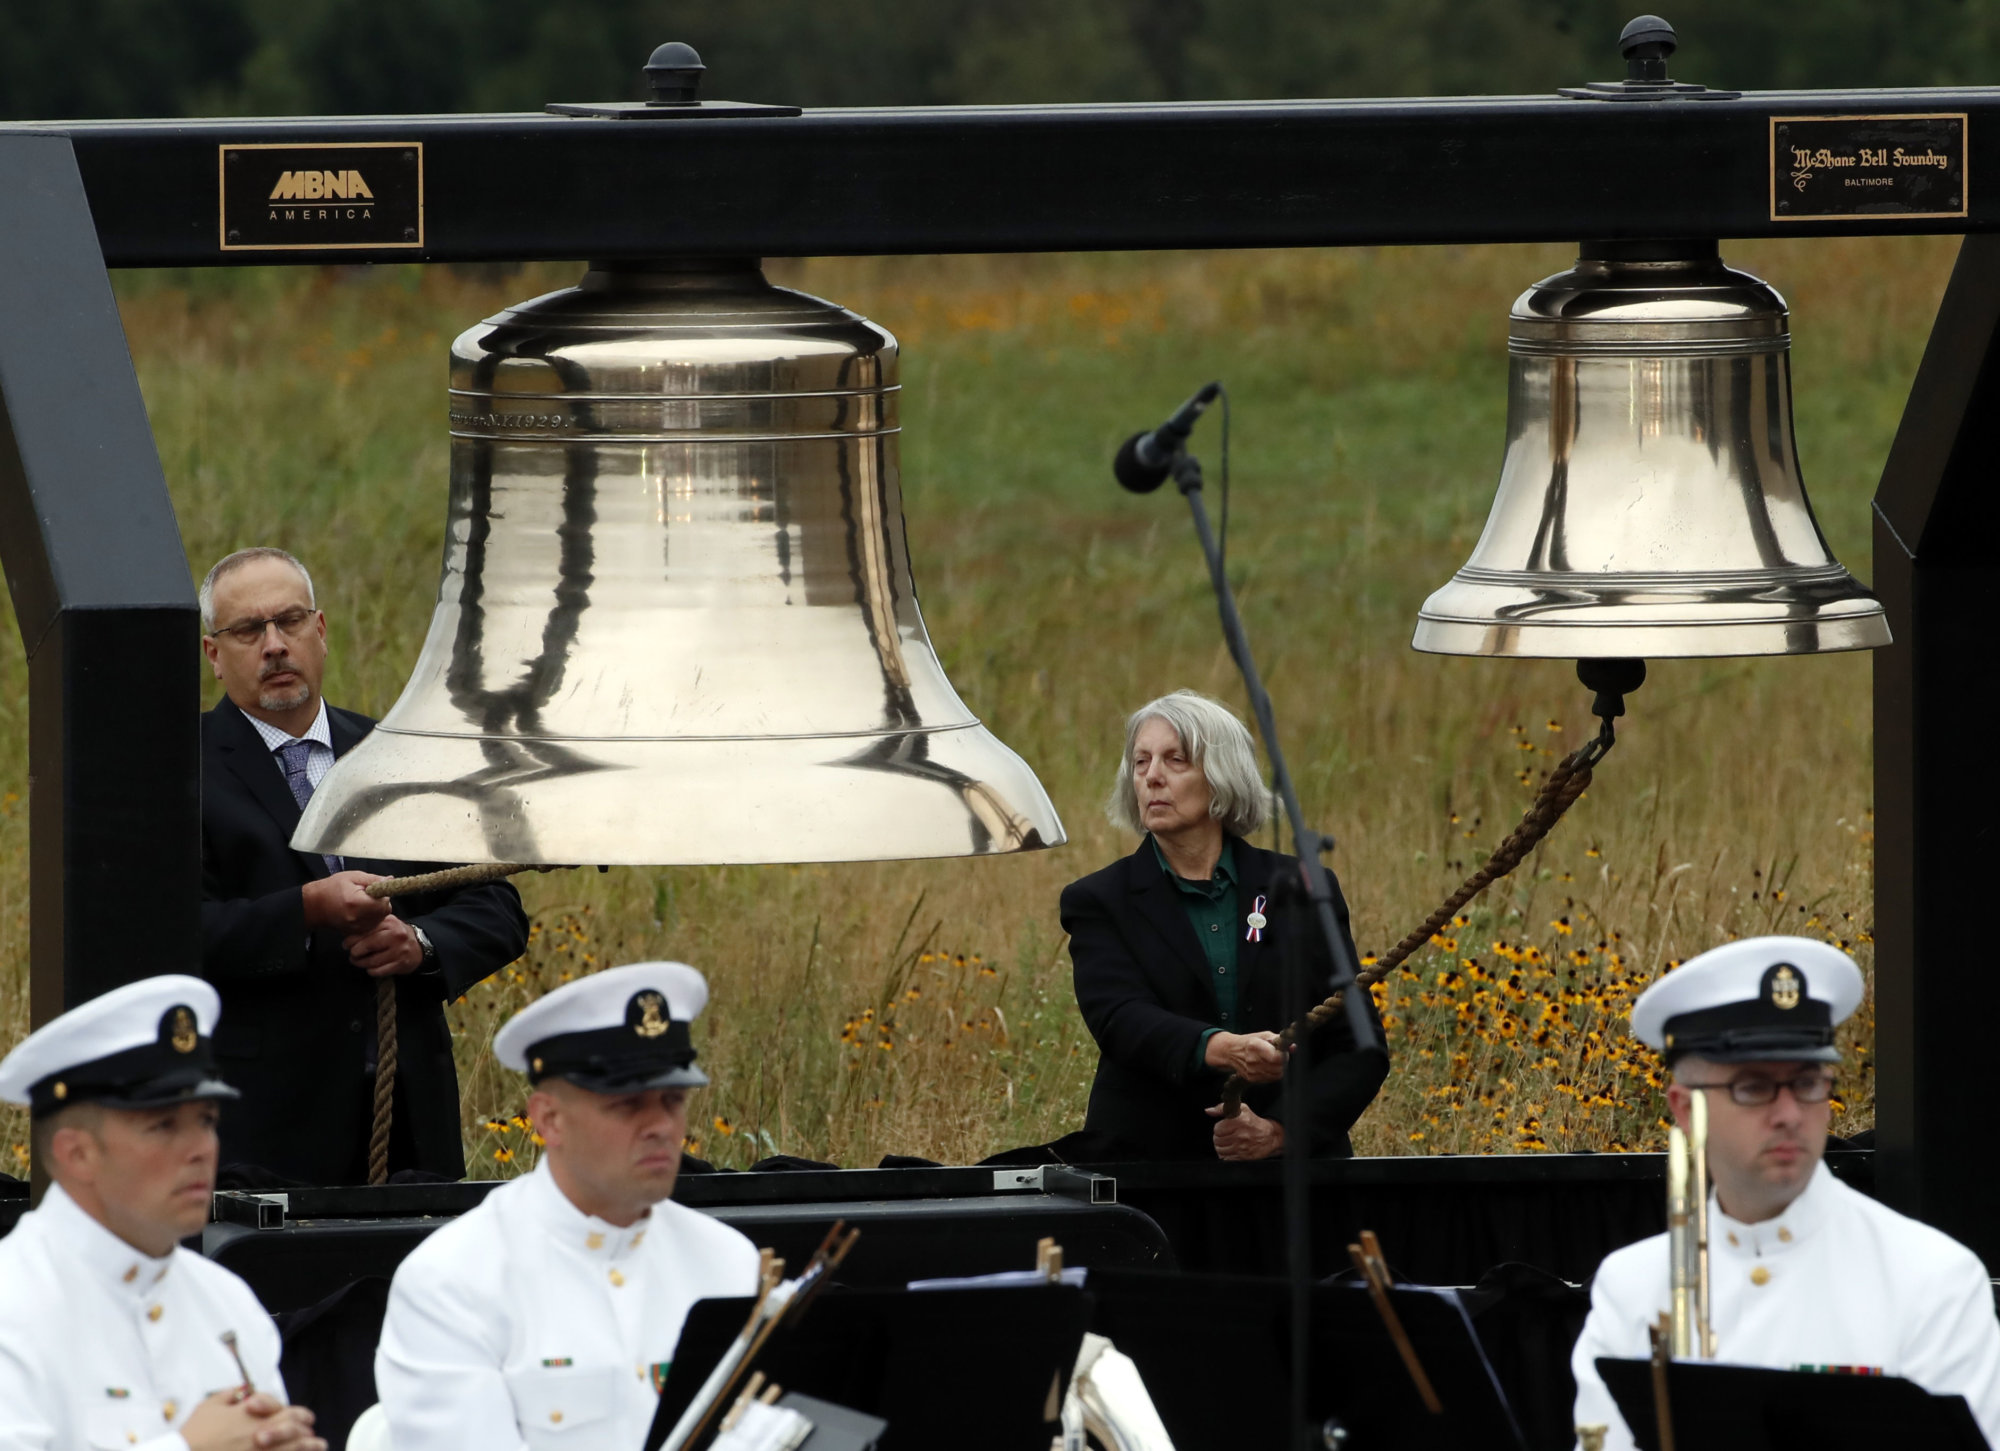 Bill Anders, left, and Sharon Custer ring bells as part of the Name Presentation and Ringing of Bells Remembrance during the September 11th Flight 93 Memorial Service in Shanksville, Pa., attended by President Donald Trump and first lady Melania Trump, Tuesday, Sept. 11, 2018. (AP Photo/Gene J. Puskar)